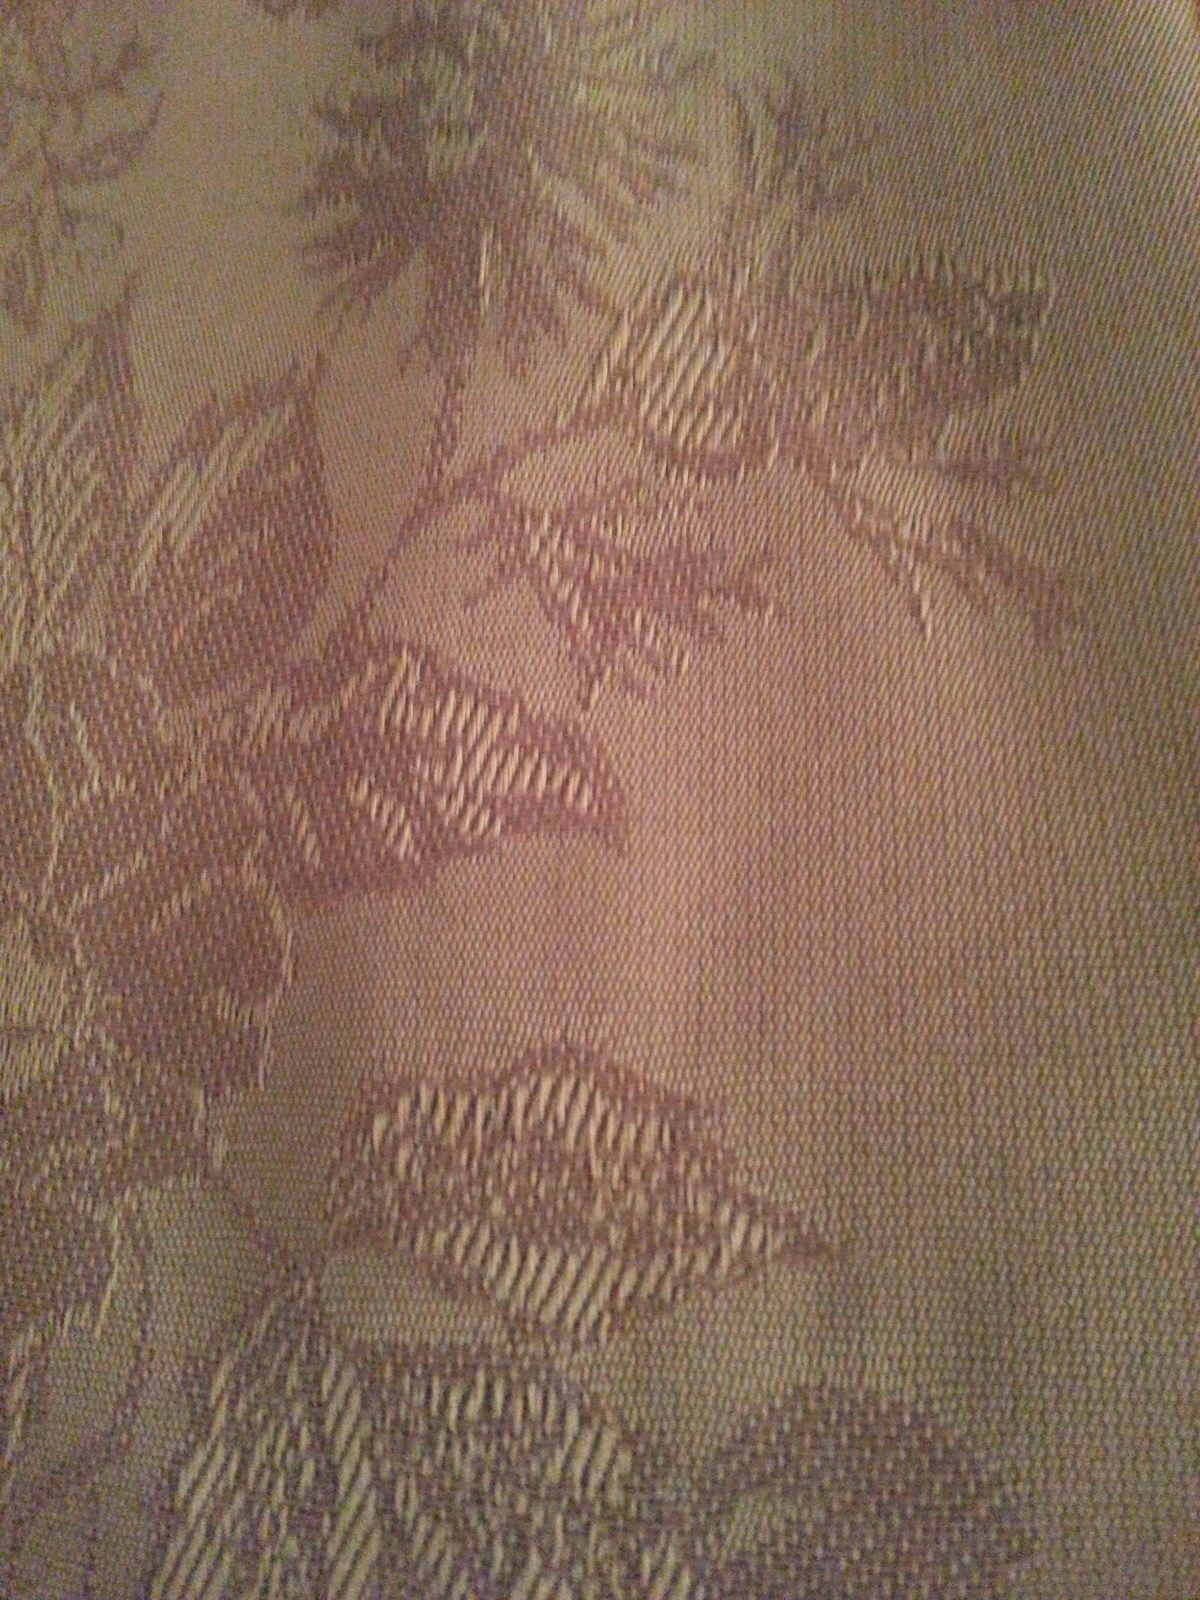 Elegant valance, toppers. Curtains, drapes, window treatments